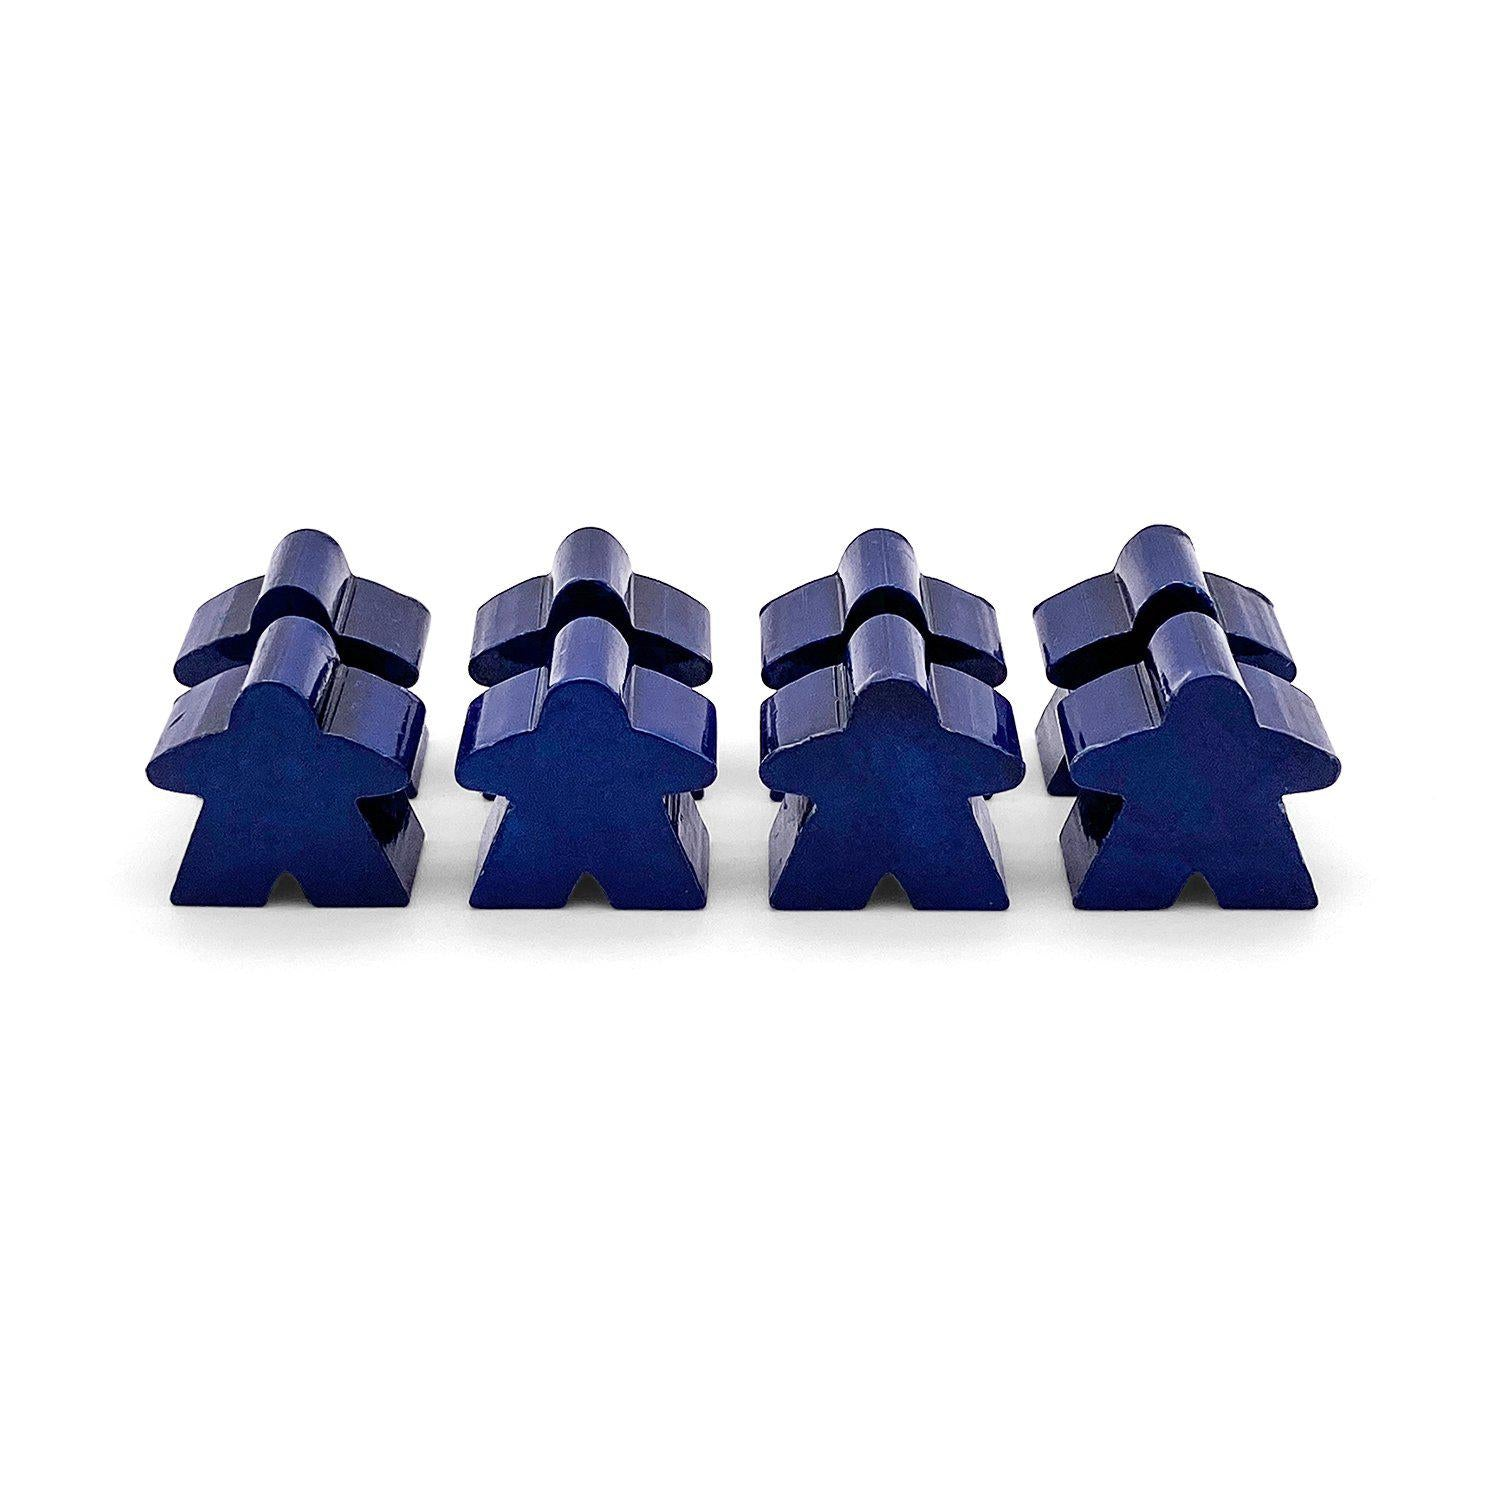 8 Pack of Blue Metal Meeples by Norse Foundry